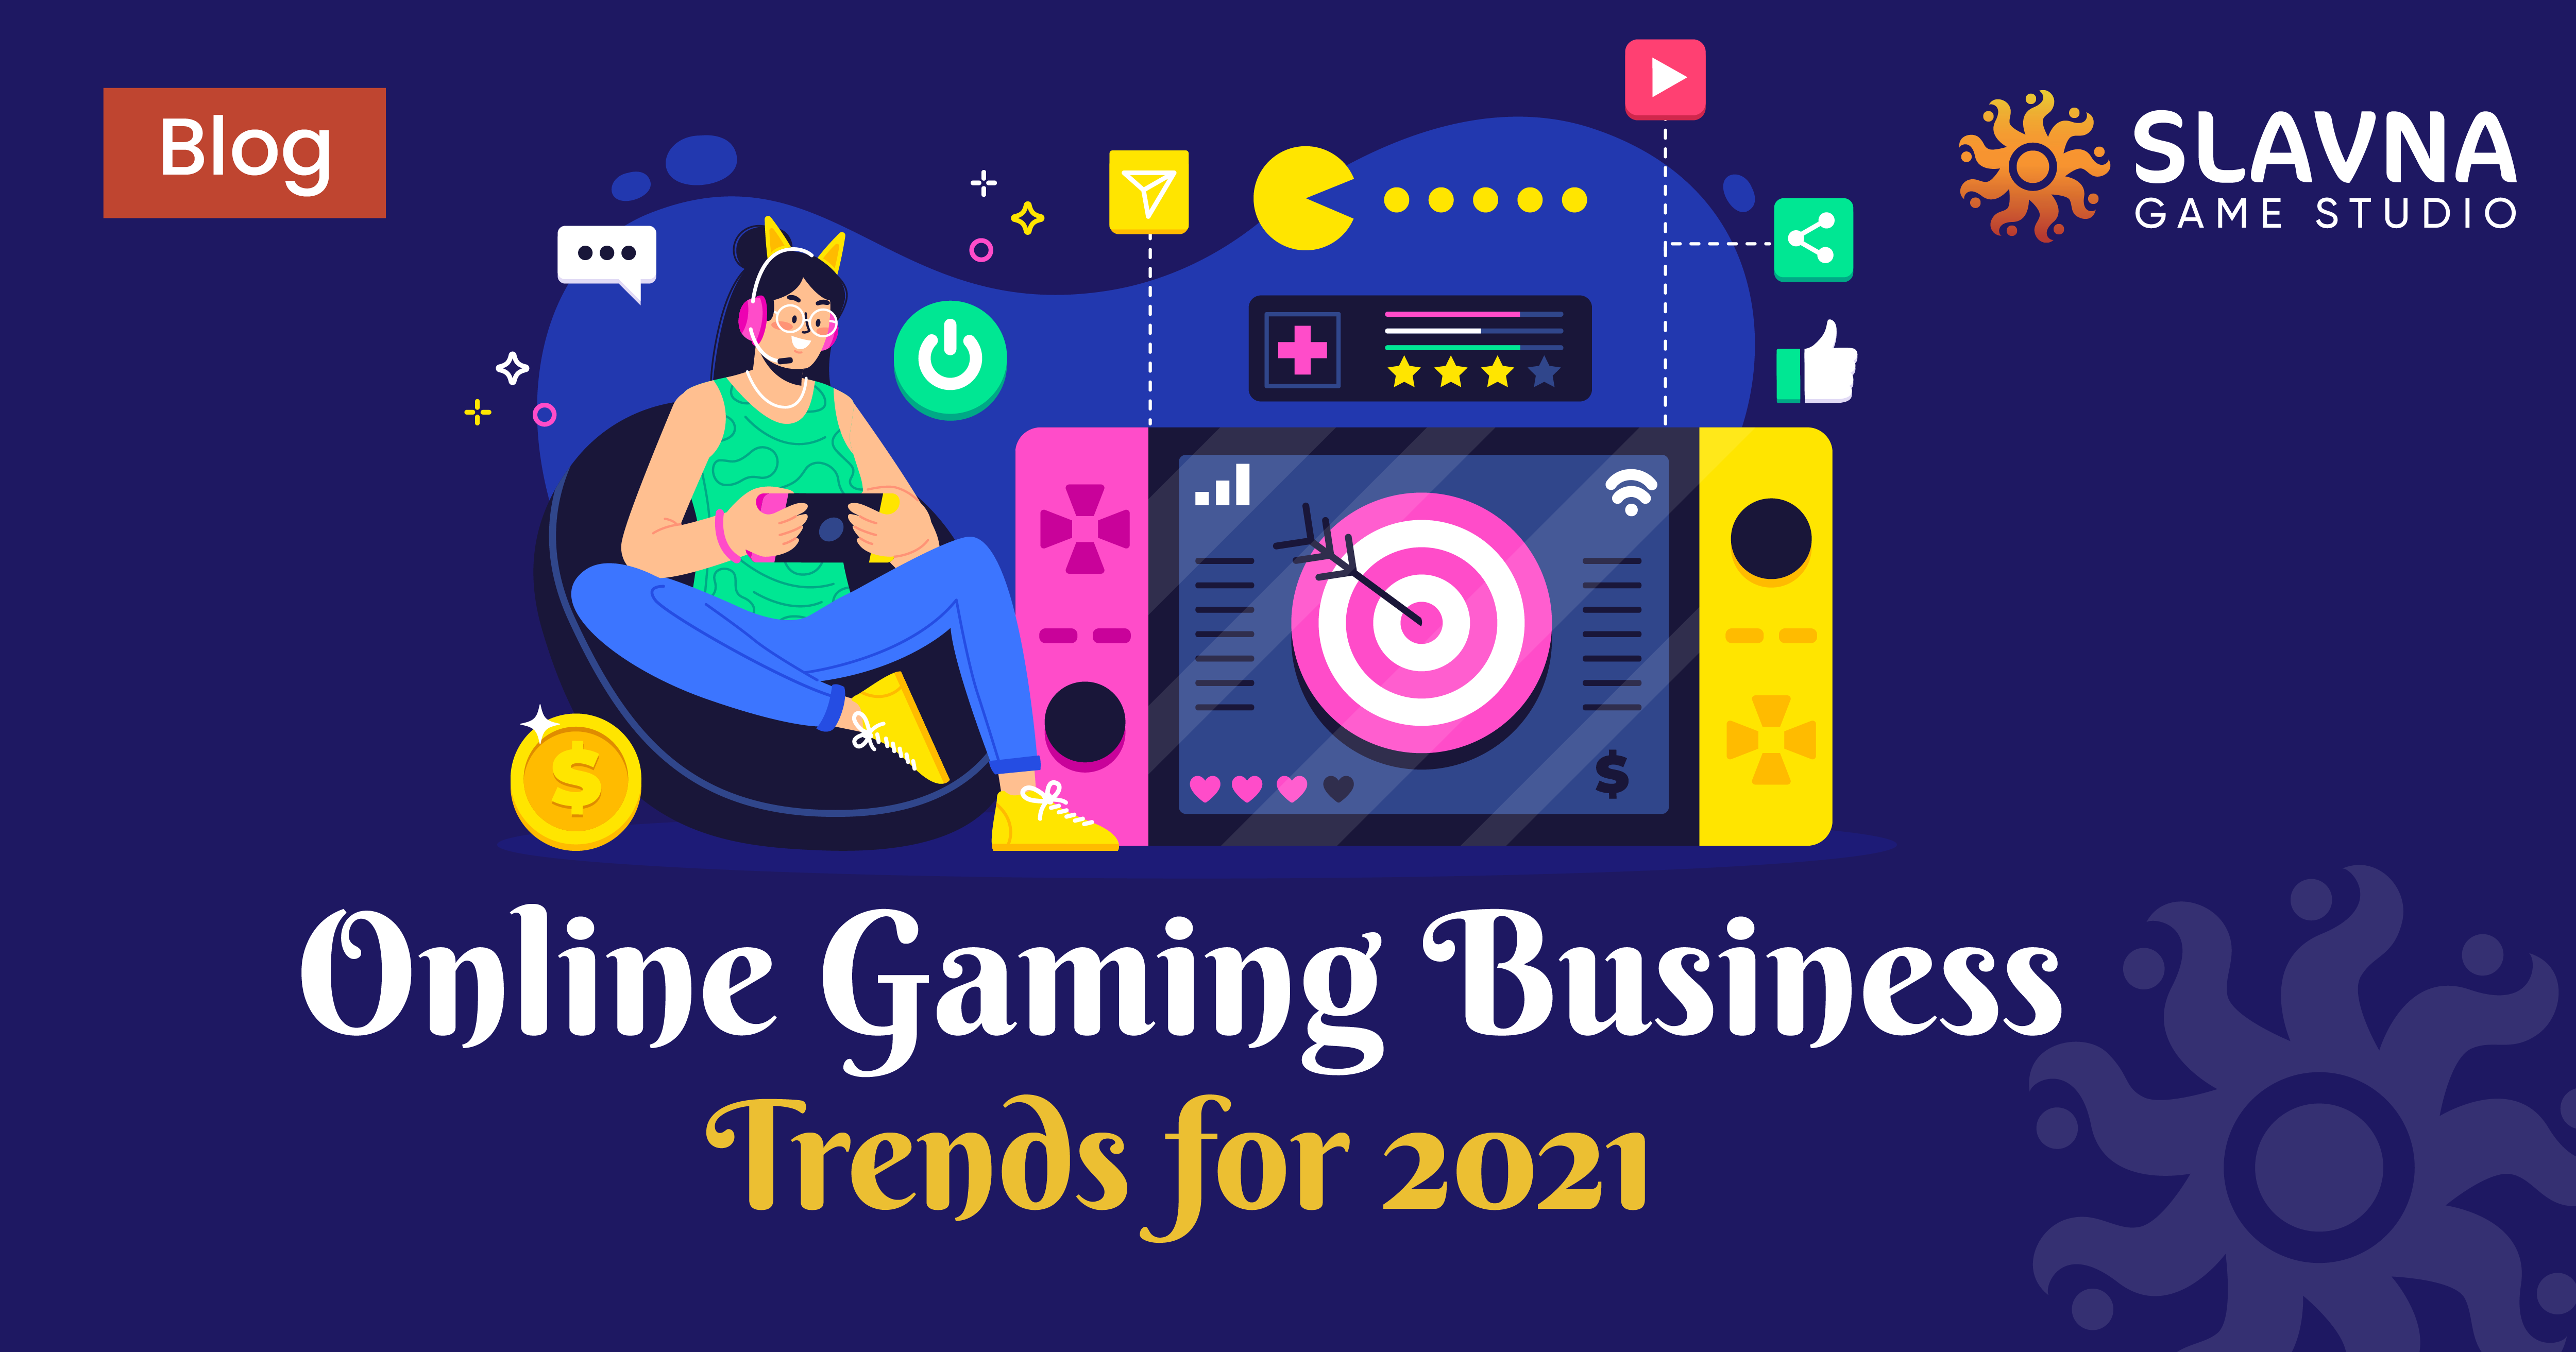 Online Gaming, Mobile Game Development Company in USA